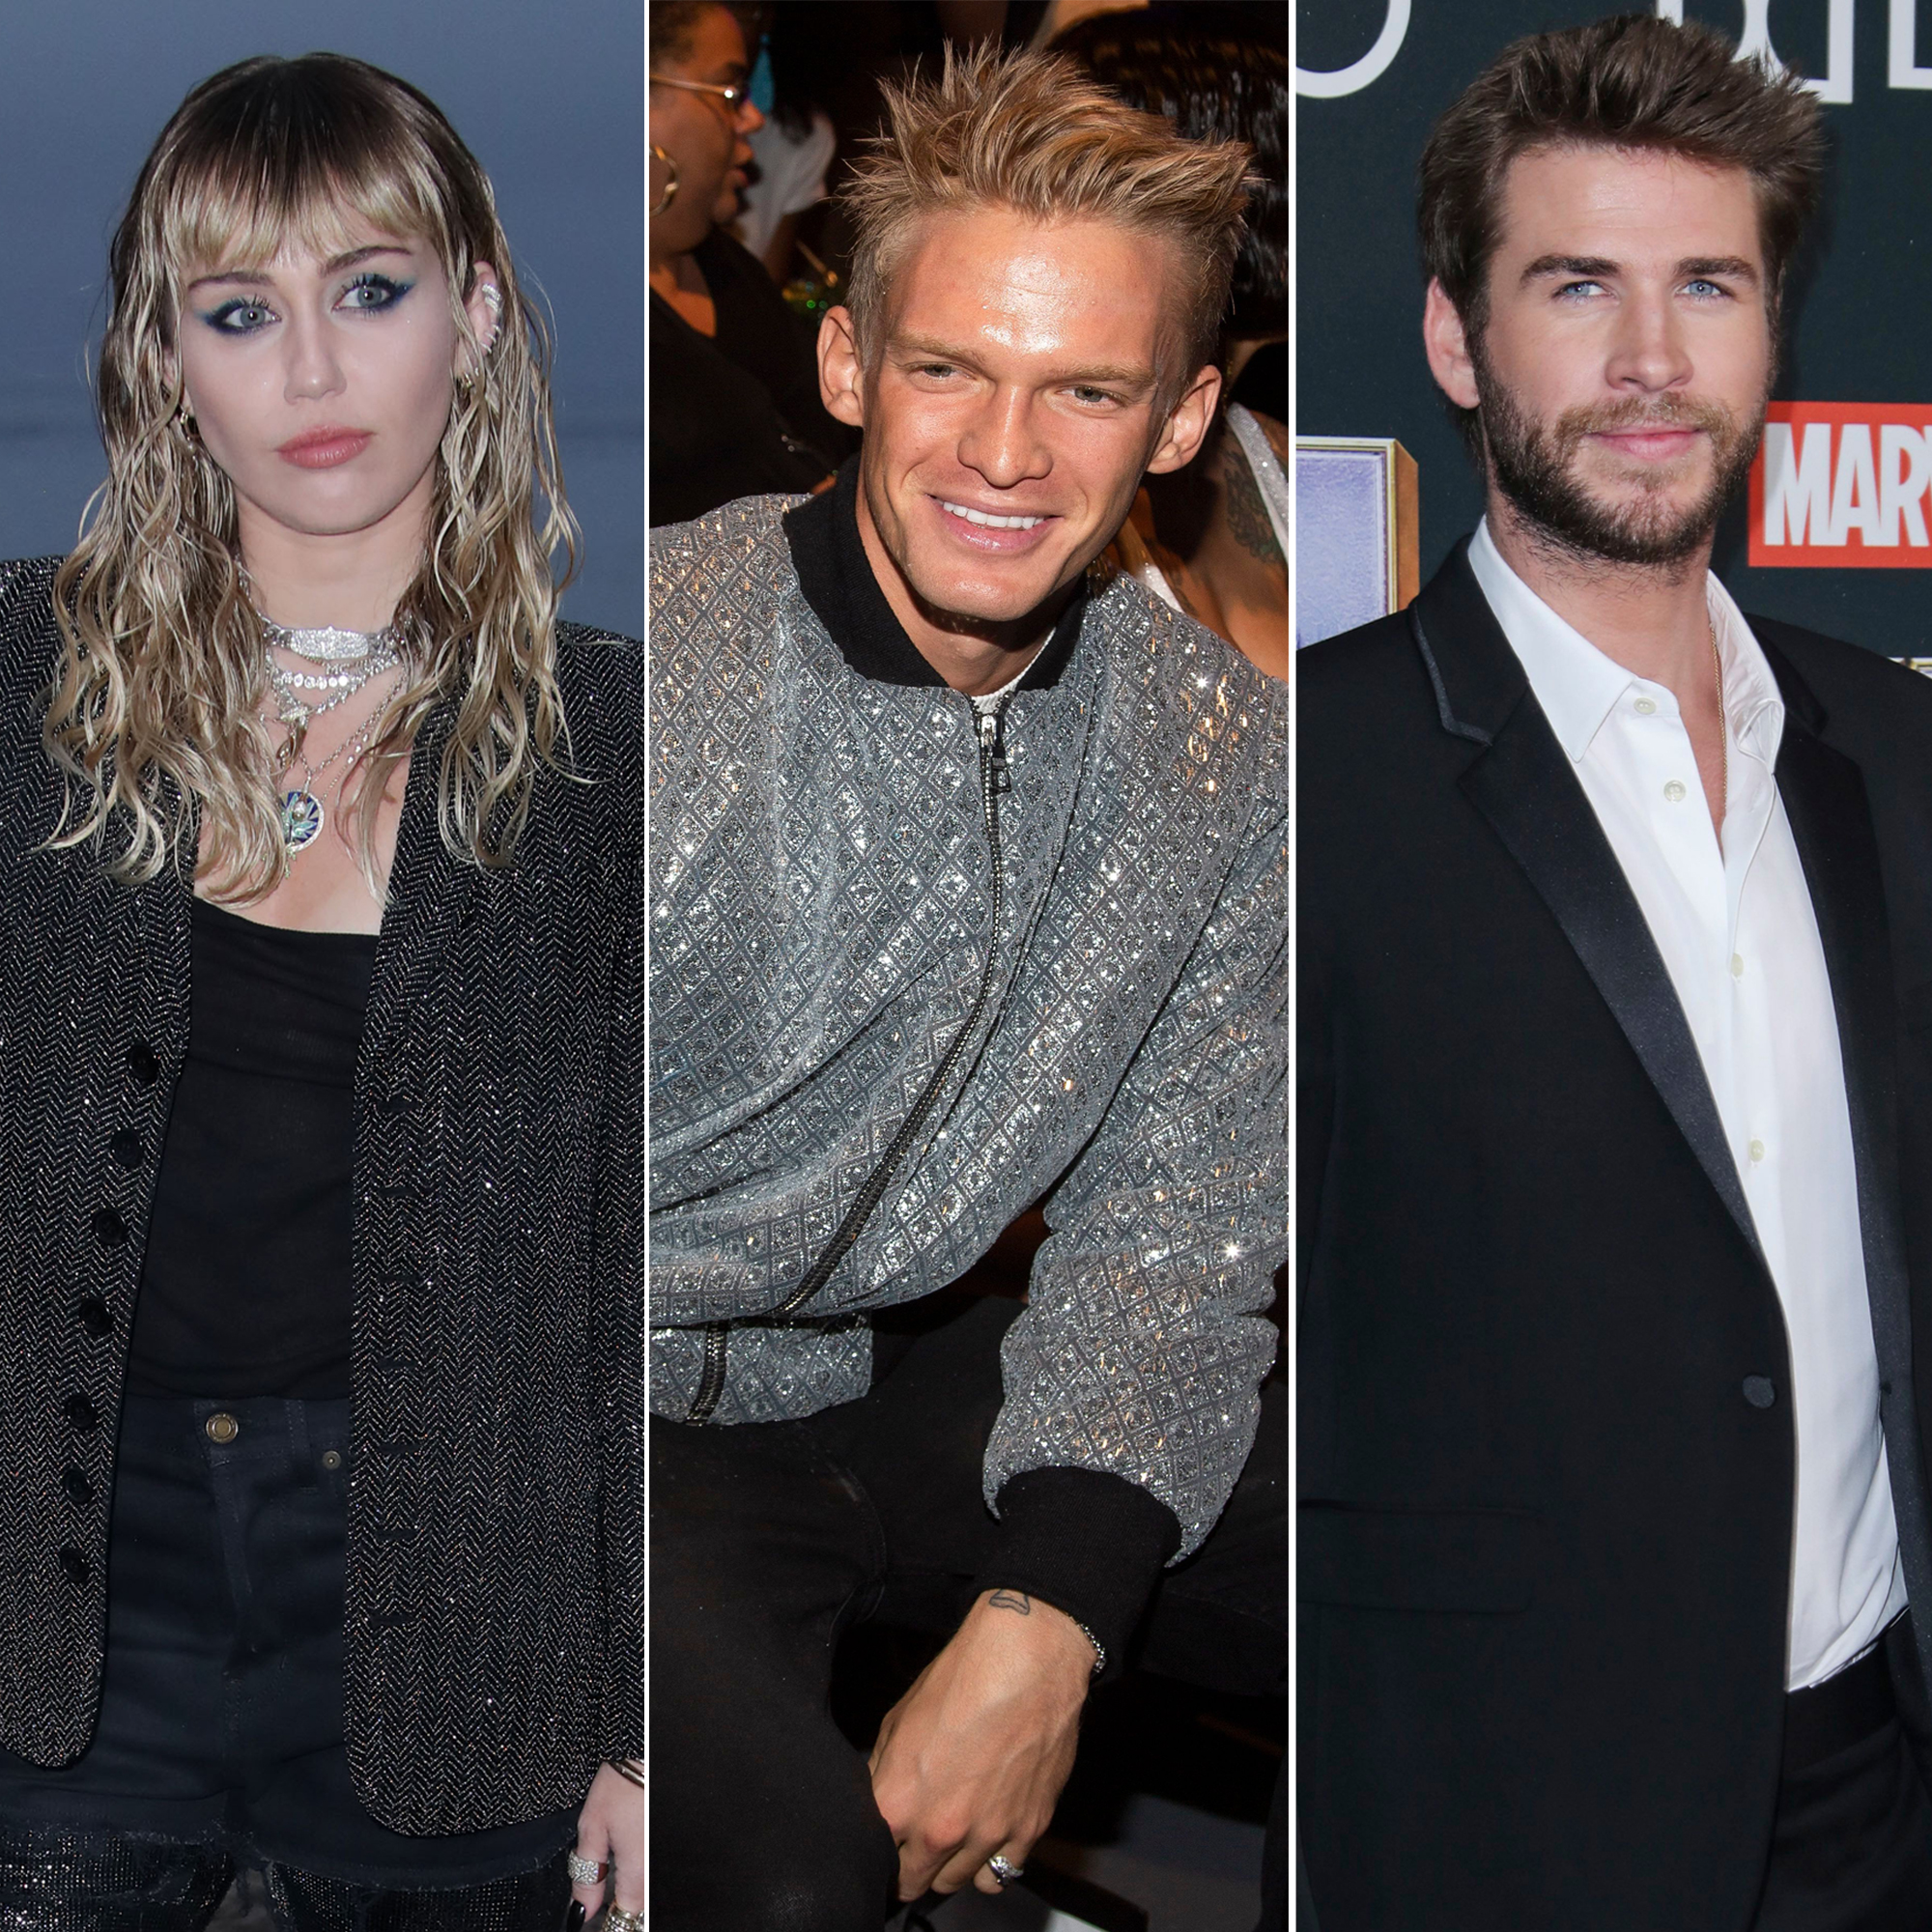 Miley Cyrus Spotted Kissing Cody Simpson After Liam Hemsworth Split